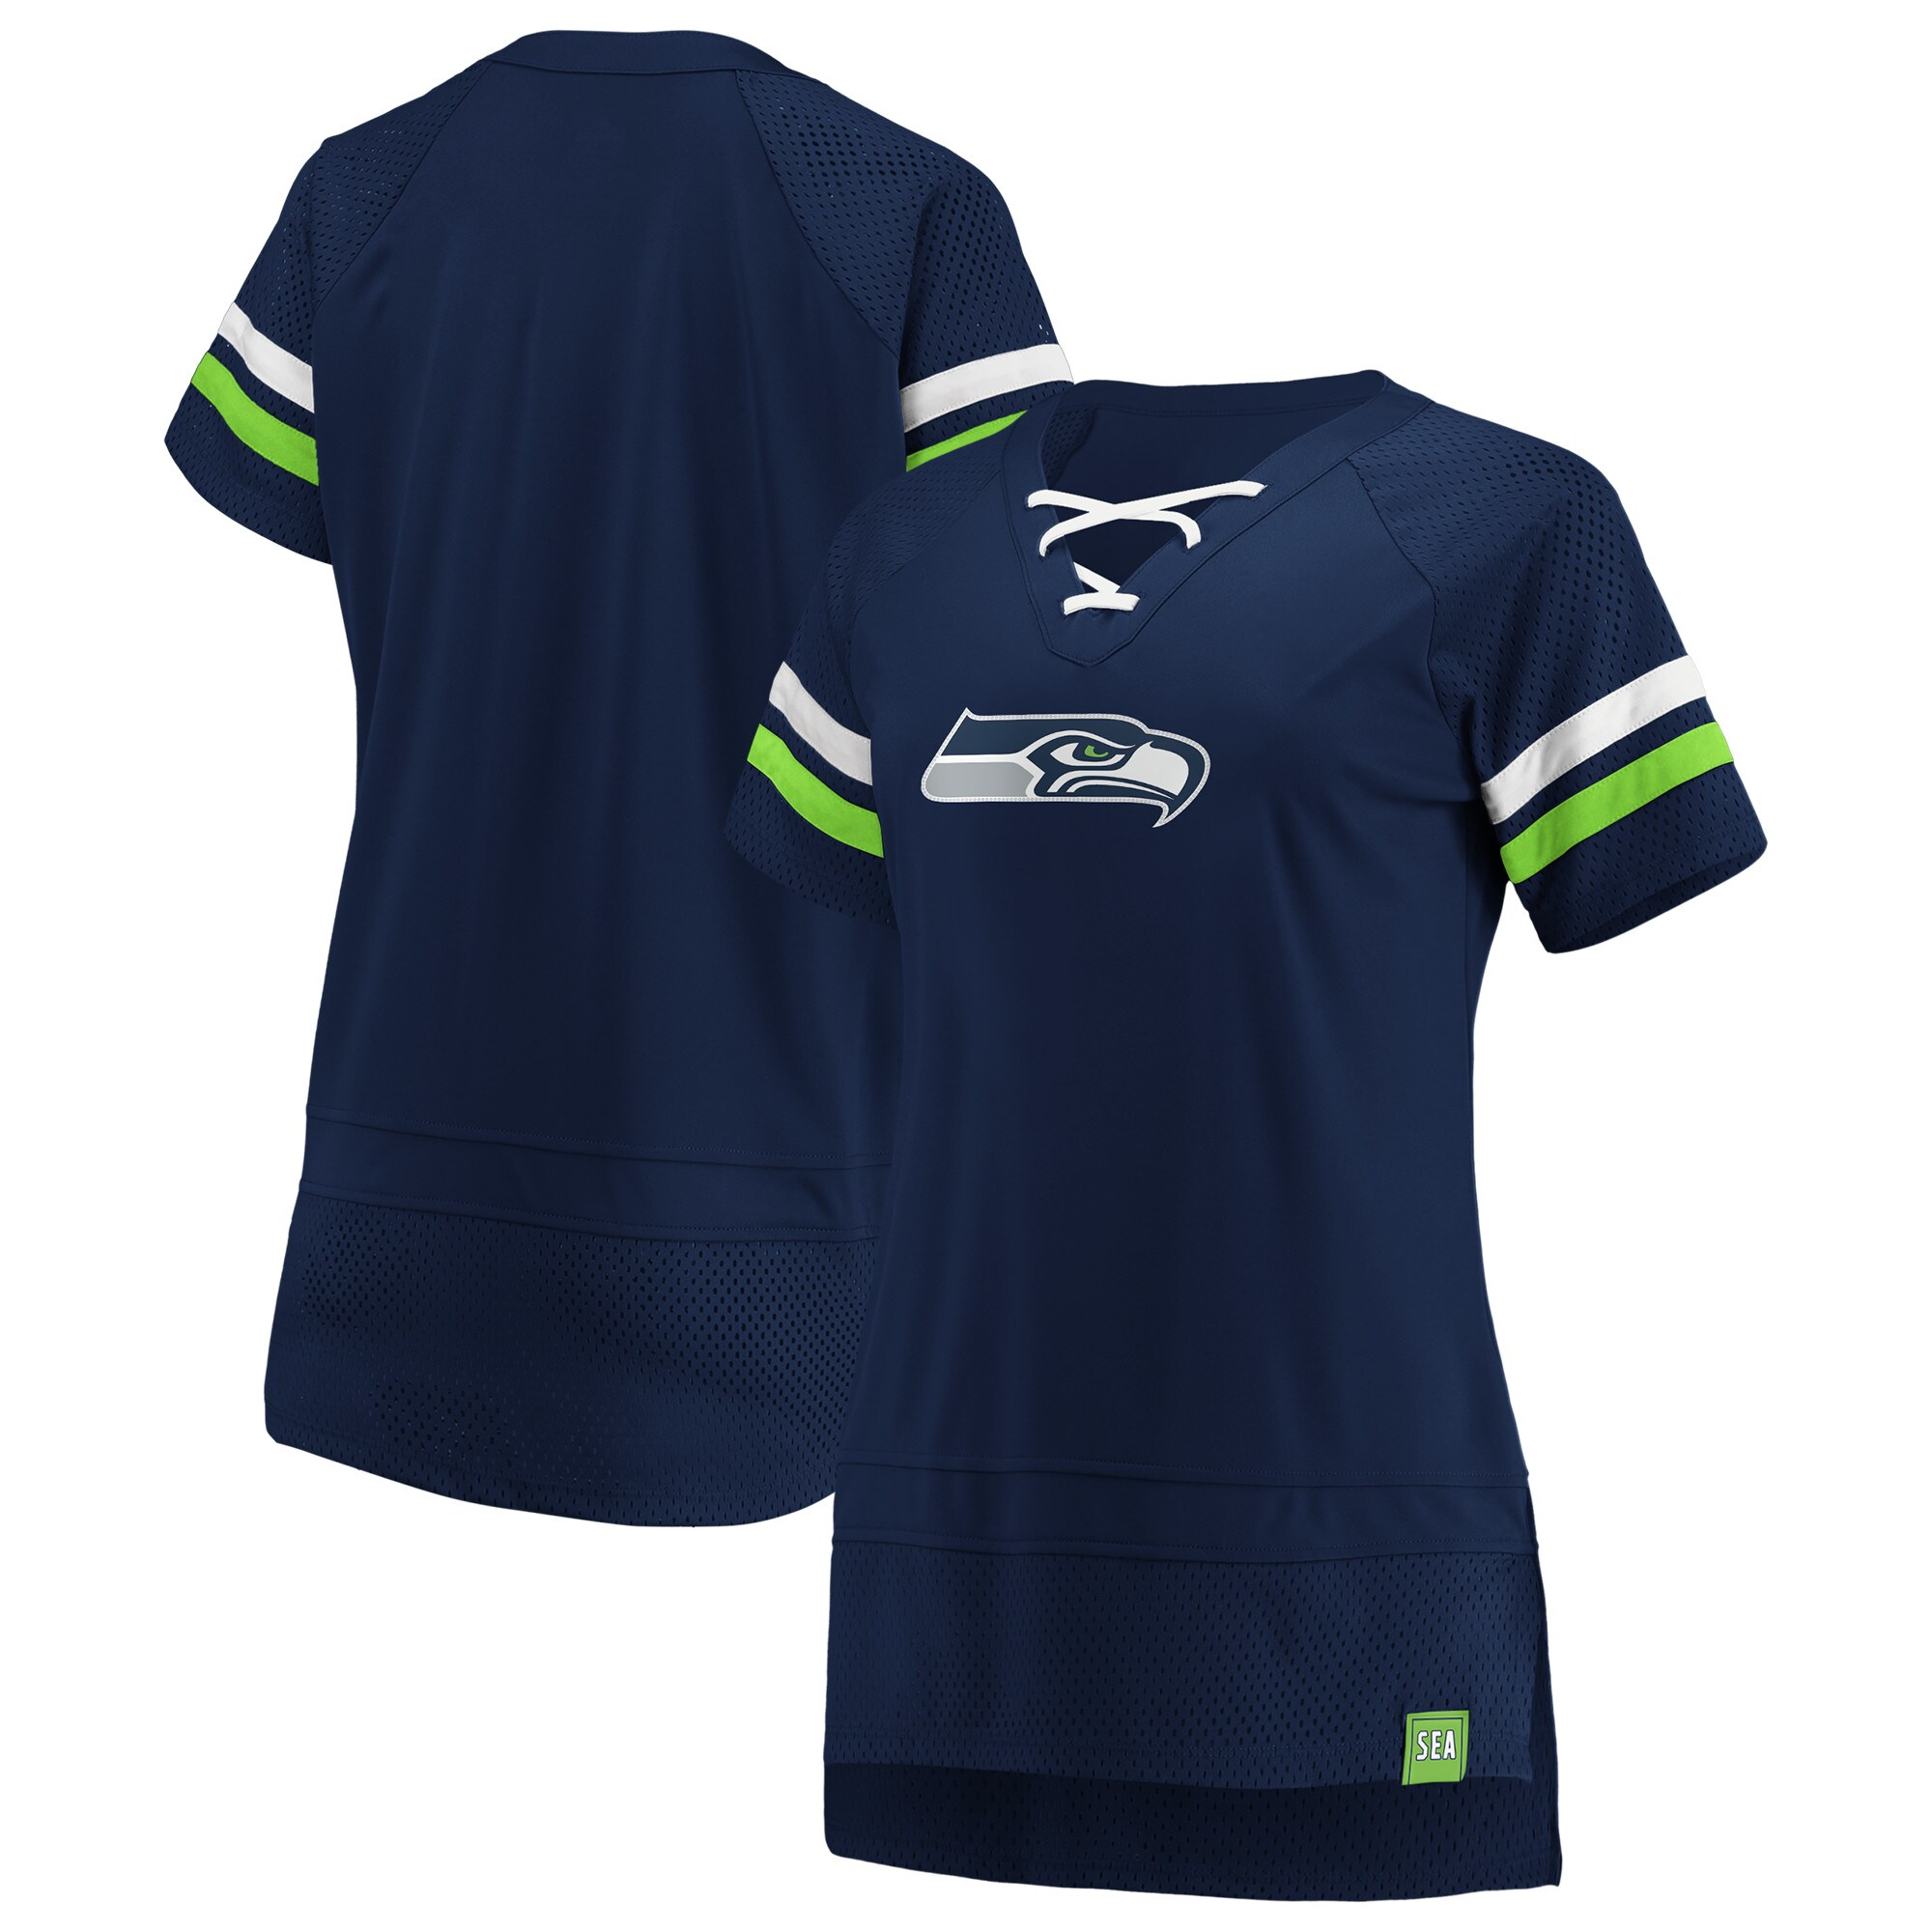 Seattle Seahawks Fanatics Branded Women's Draft Me Lace Up T-Shirt - College Navy/Neon Green